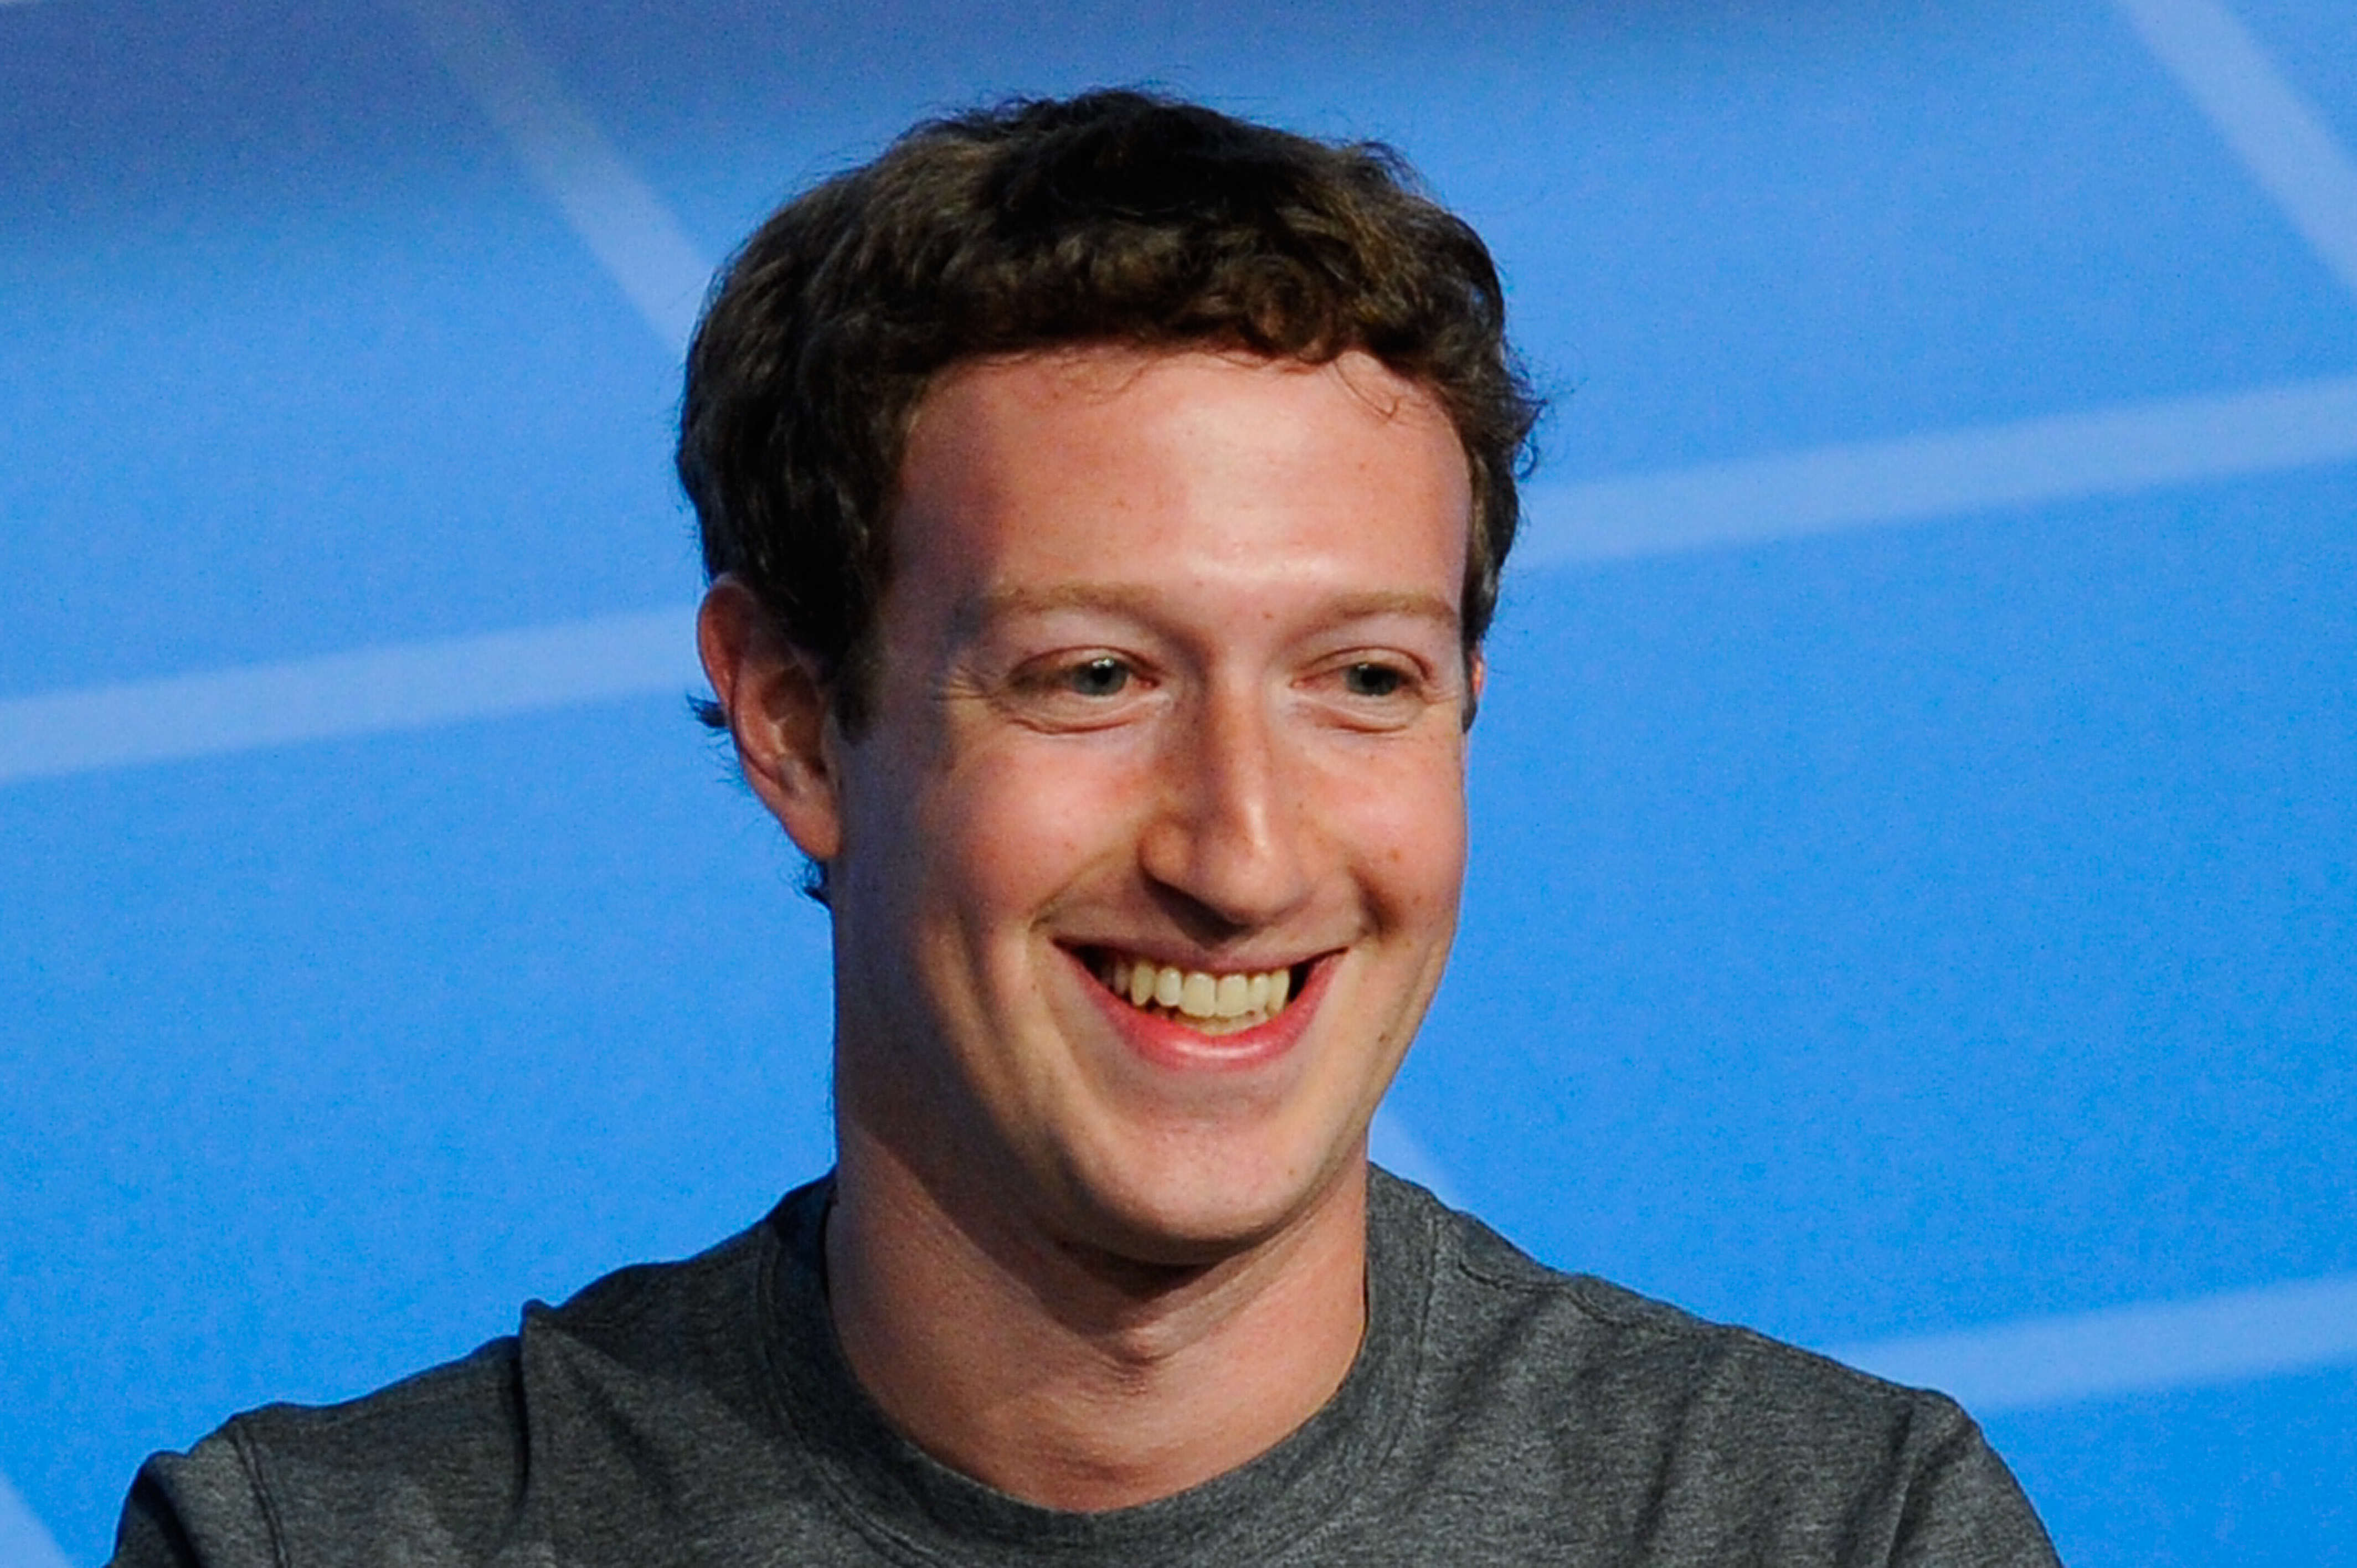 Mark Zuckerberg Just Earned Insane Amount Of Money In One Hour GettyImages 474639991